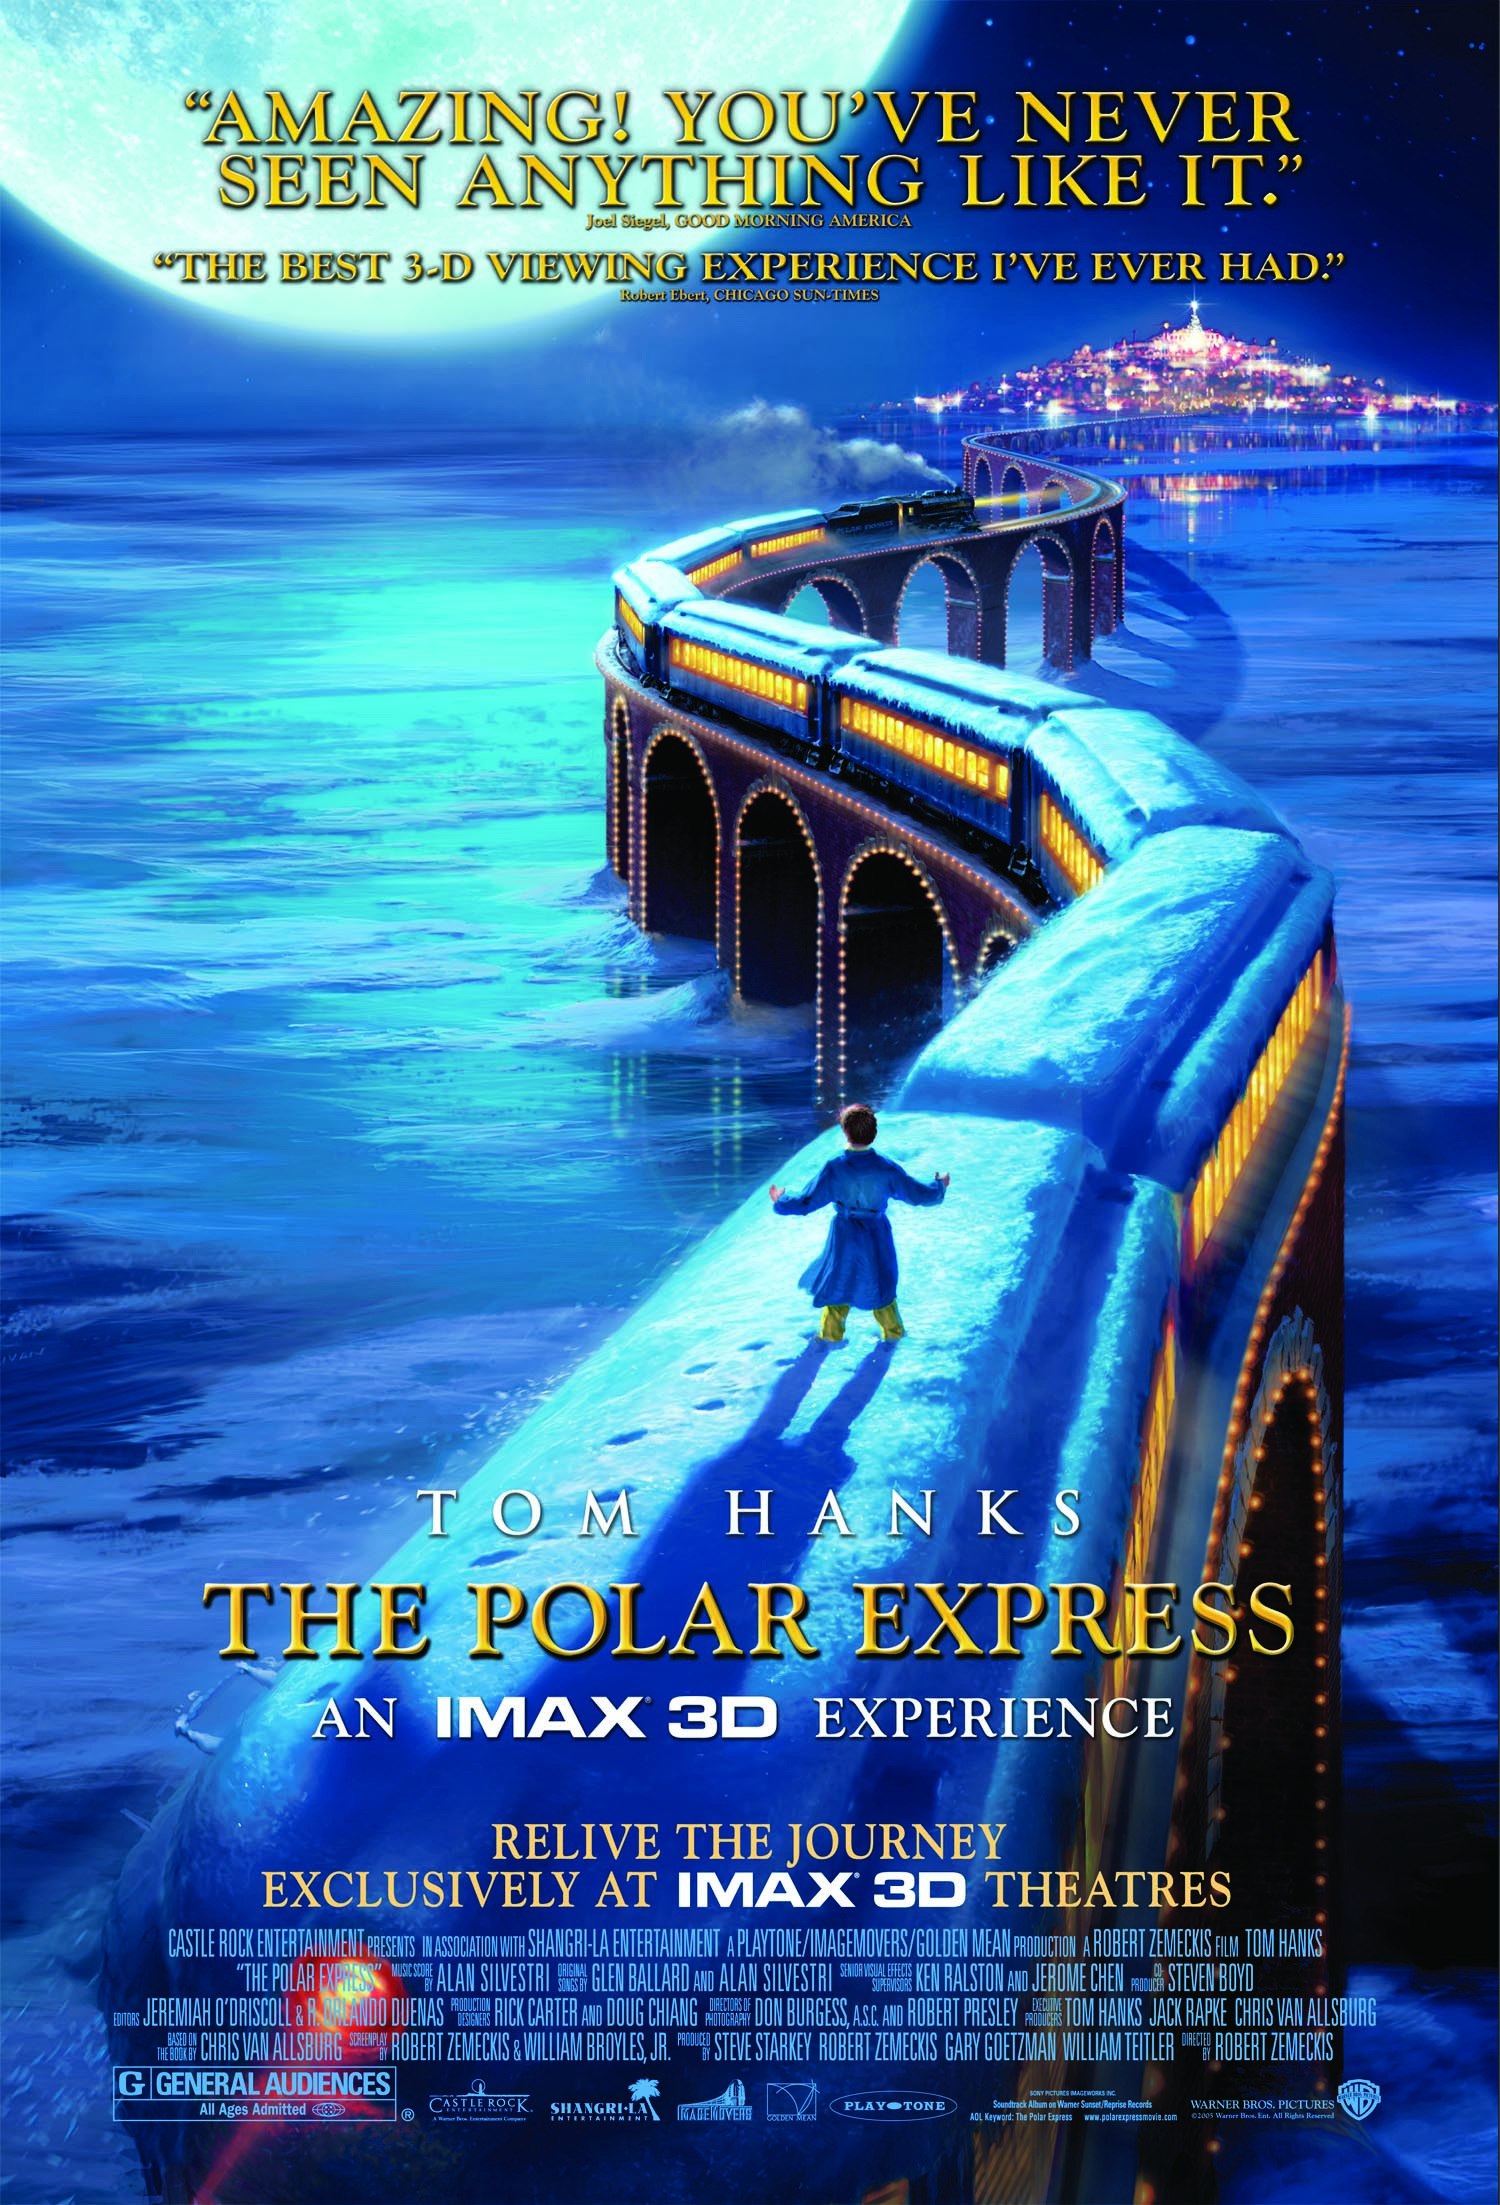 Polar Express 3D Will Be Part Of Holiday Line-Up At IMAX